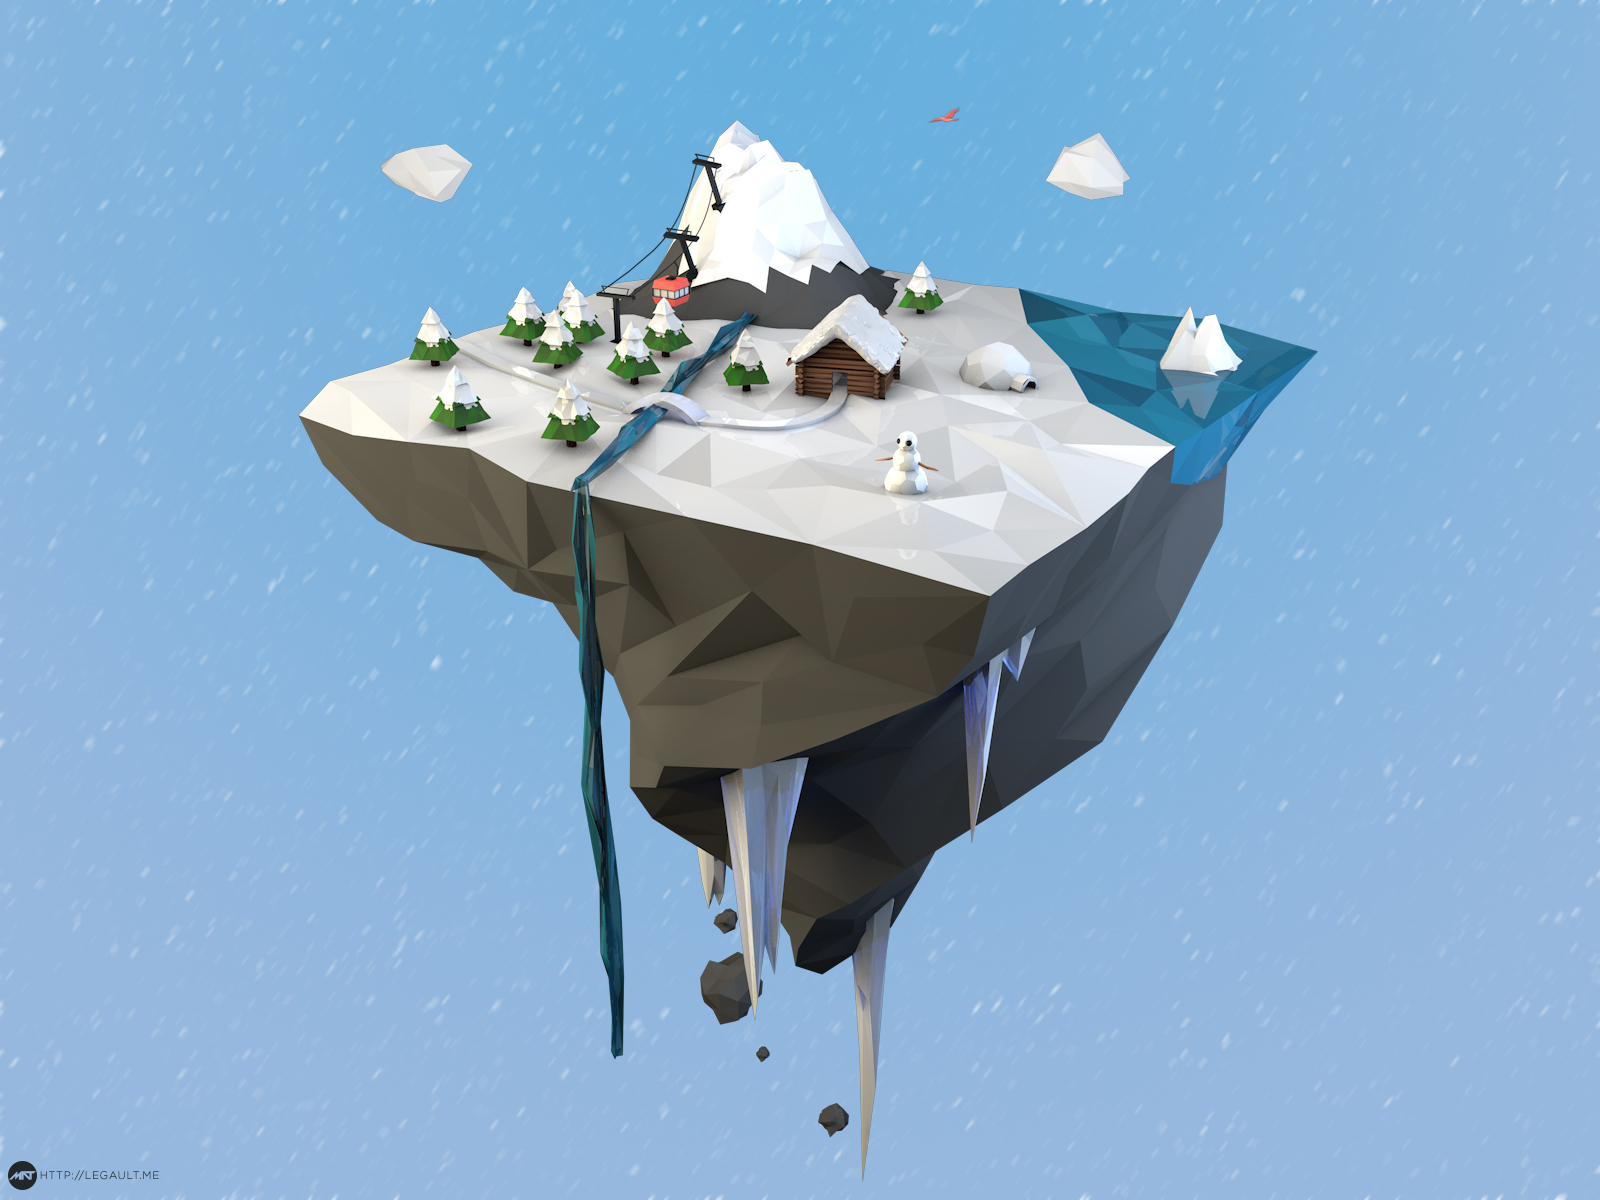 low poly mountain floating island flat minimalist simplistic cinema 4d mathieu legault simple my own little world